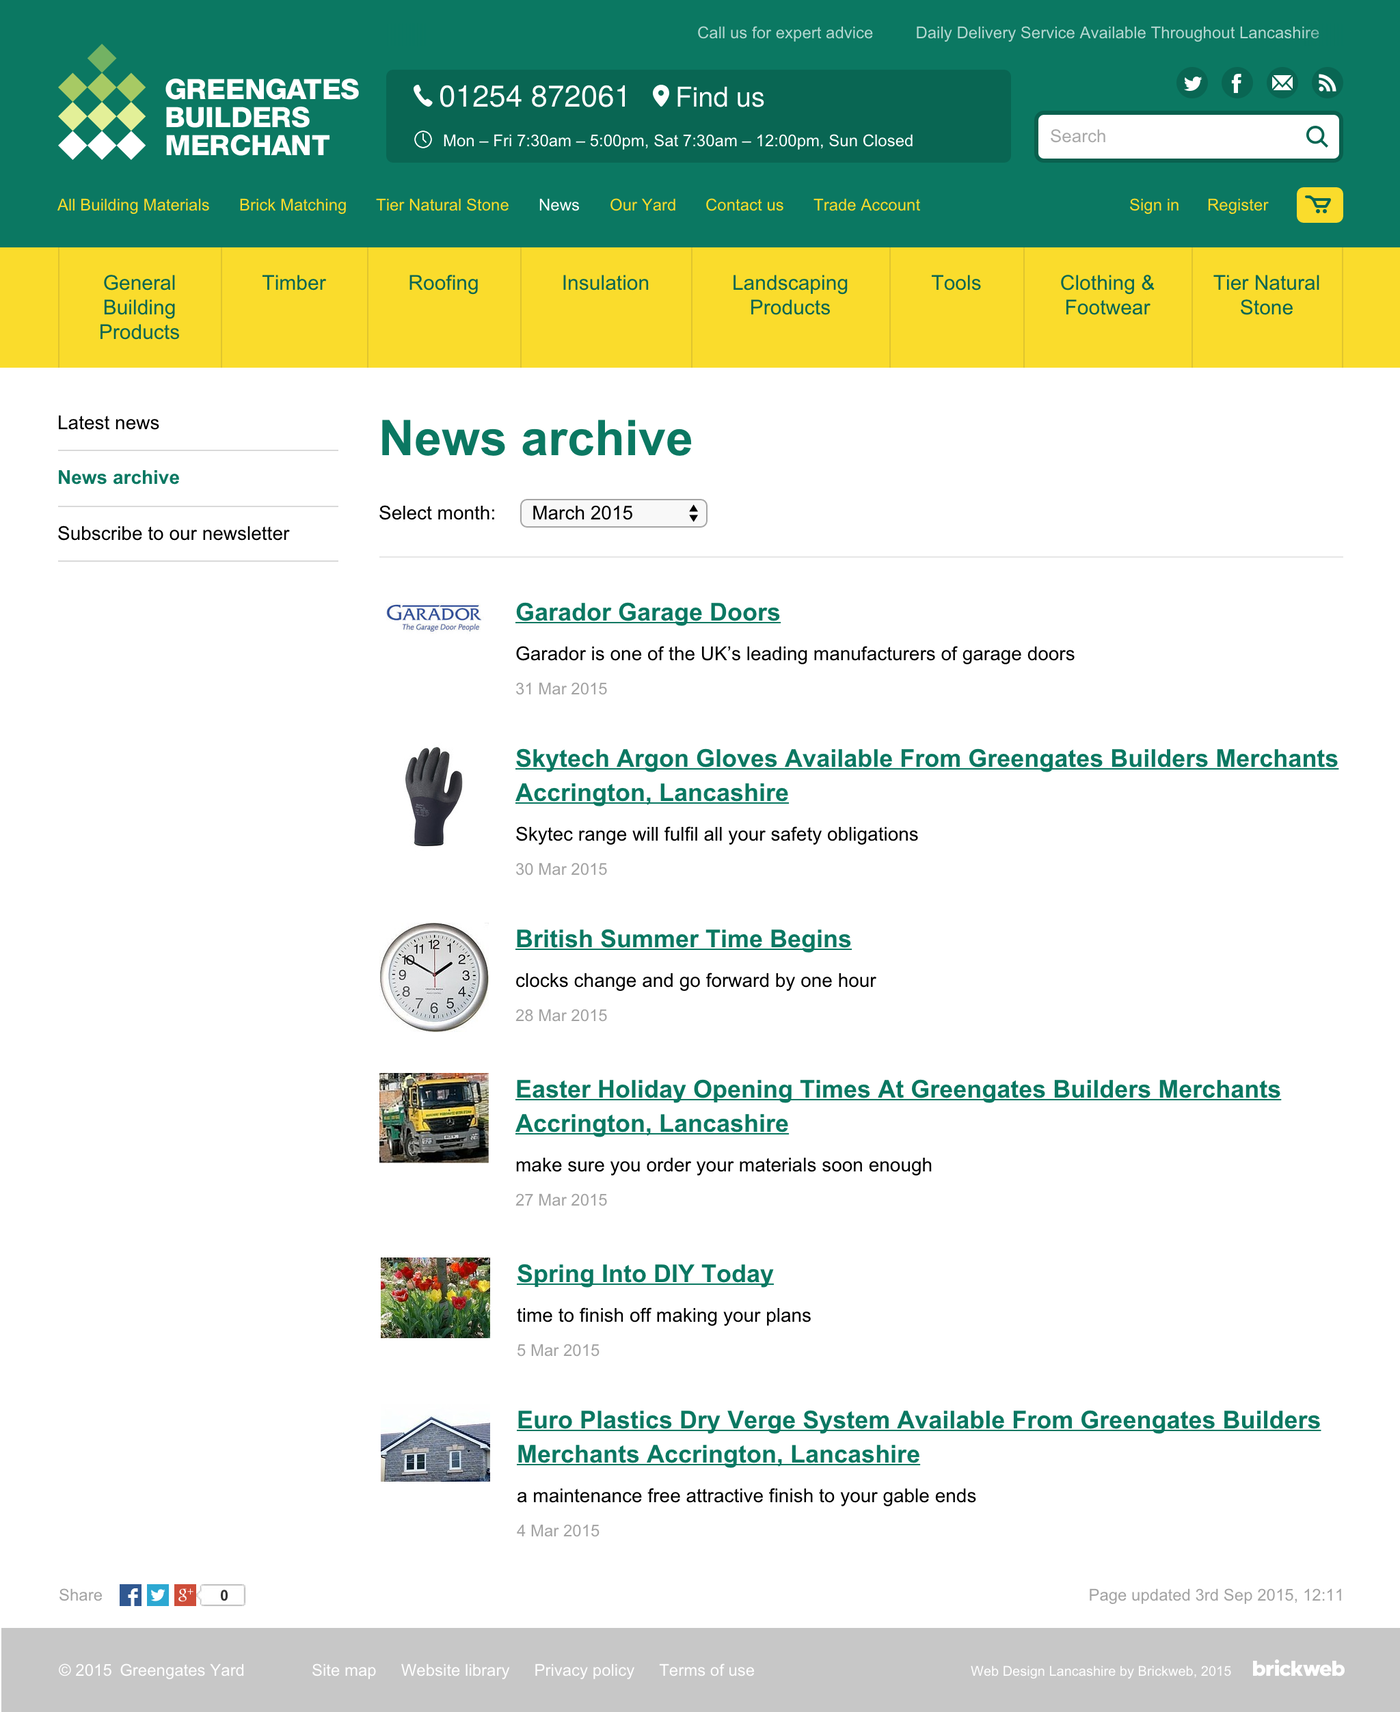 Greengates Builders Merchants 2015 News